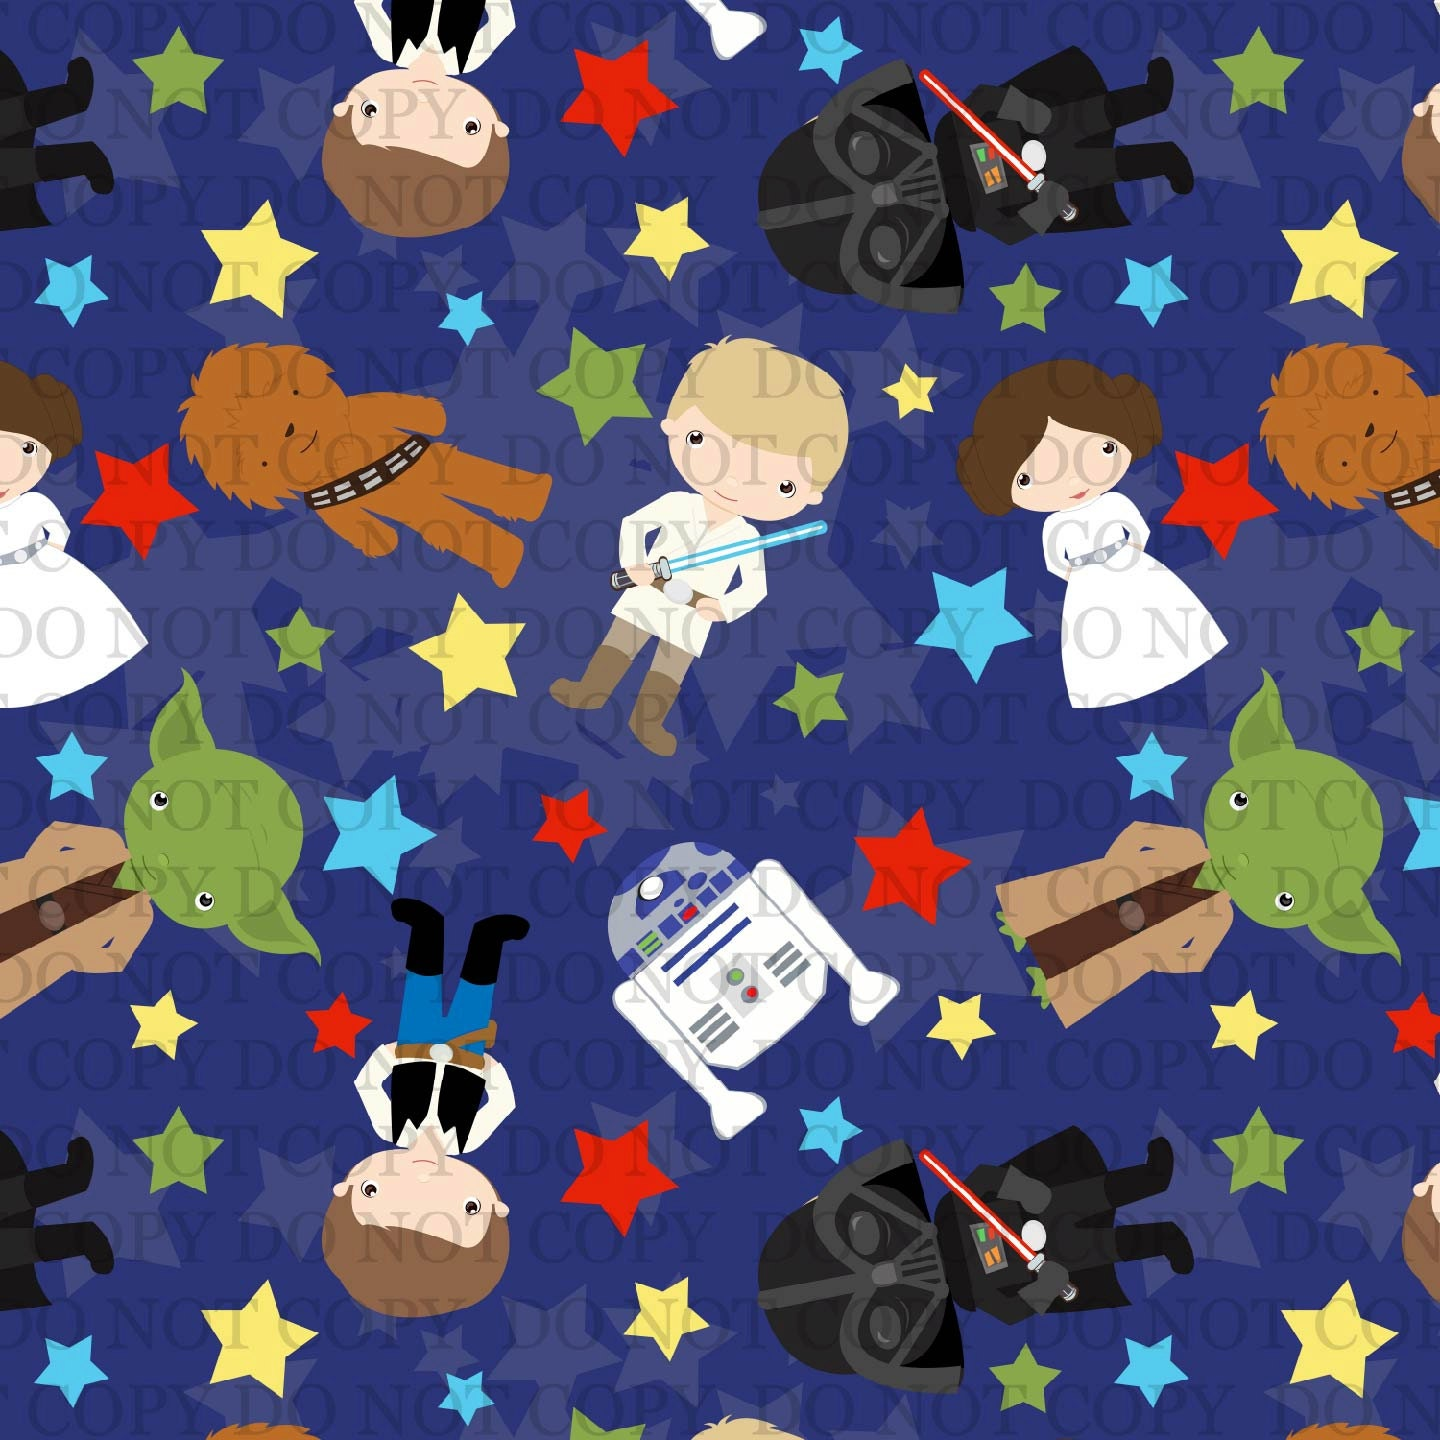 Star heroes star wars 95 5 polyester lycra jersey knit fabric for Star wars fabric